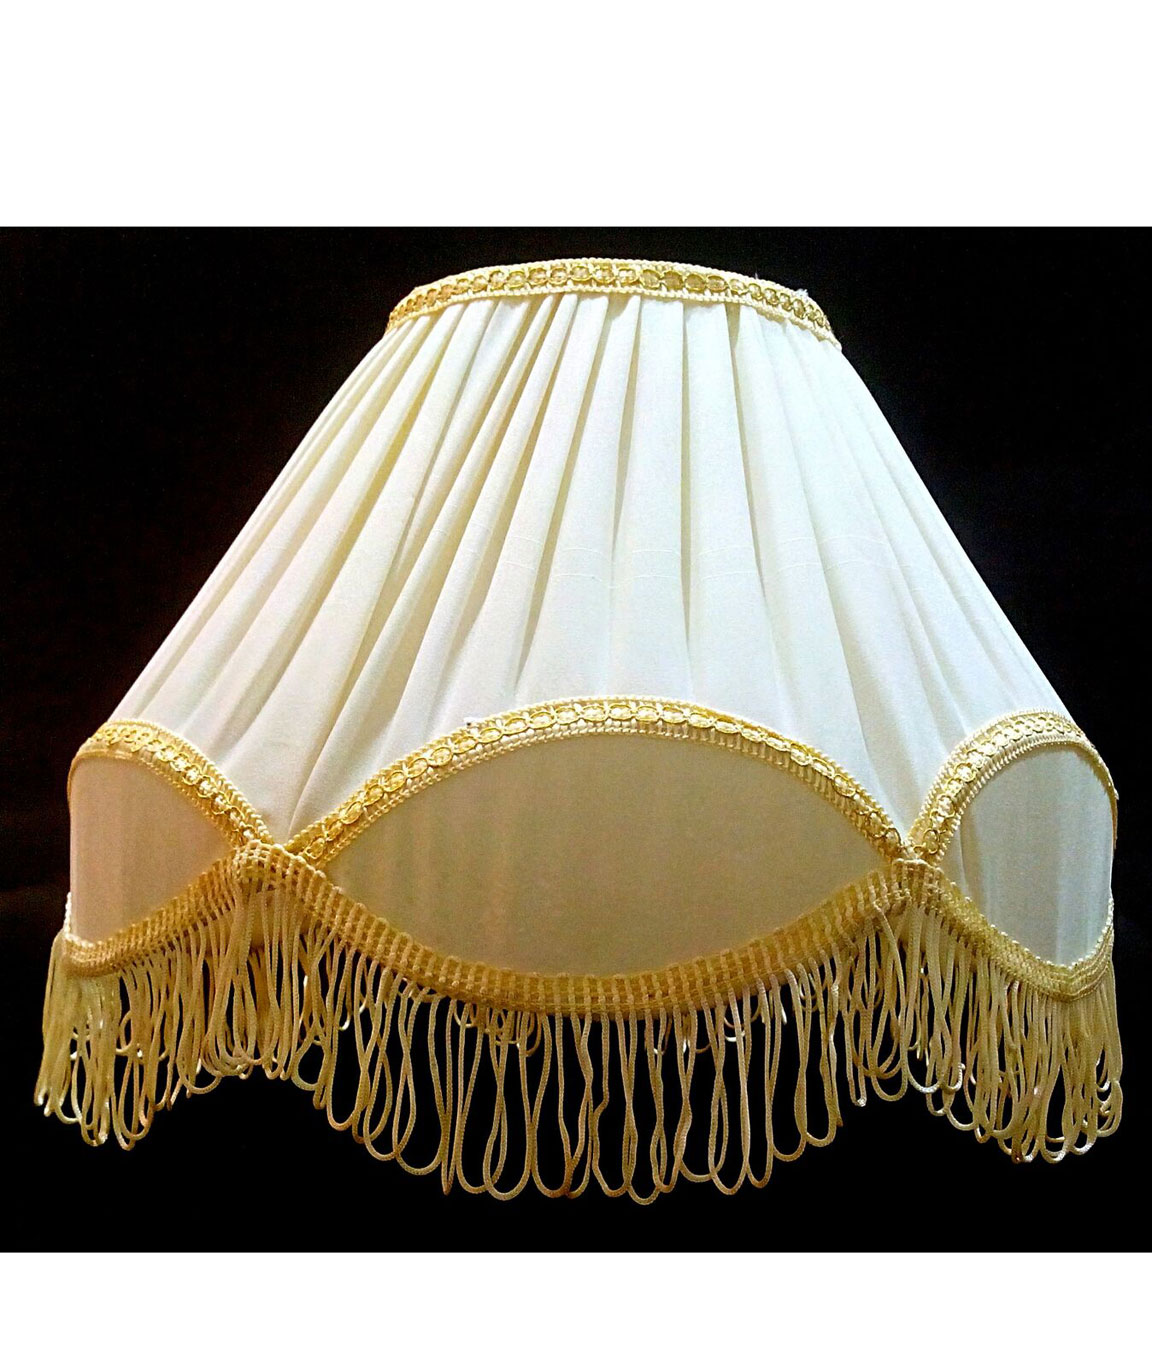 RDC 12 Inches Round Pleated Cream with Golden Lace Border with Frills Lamp Shade for Table Lamp